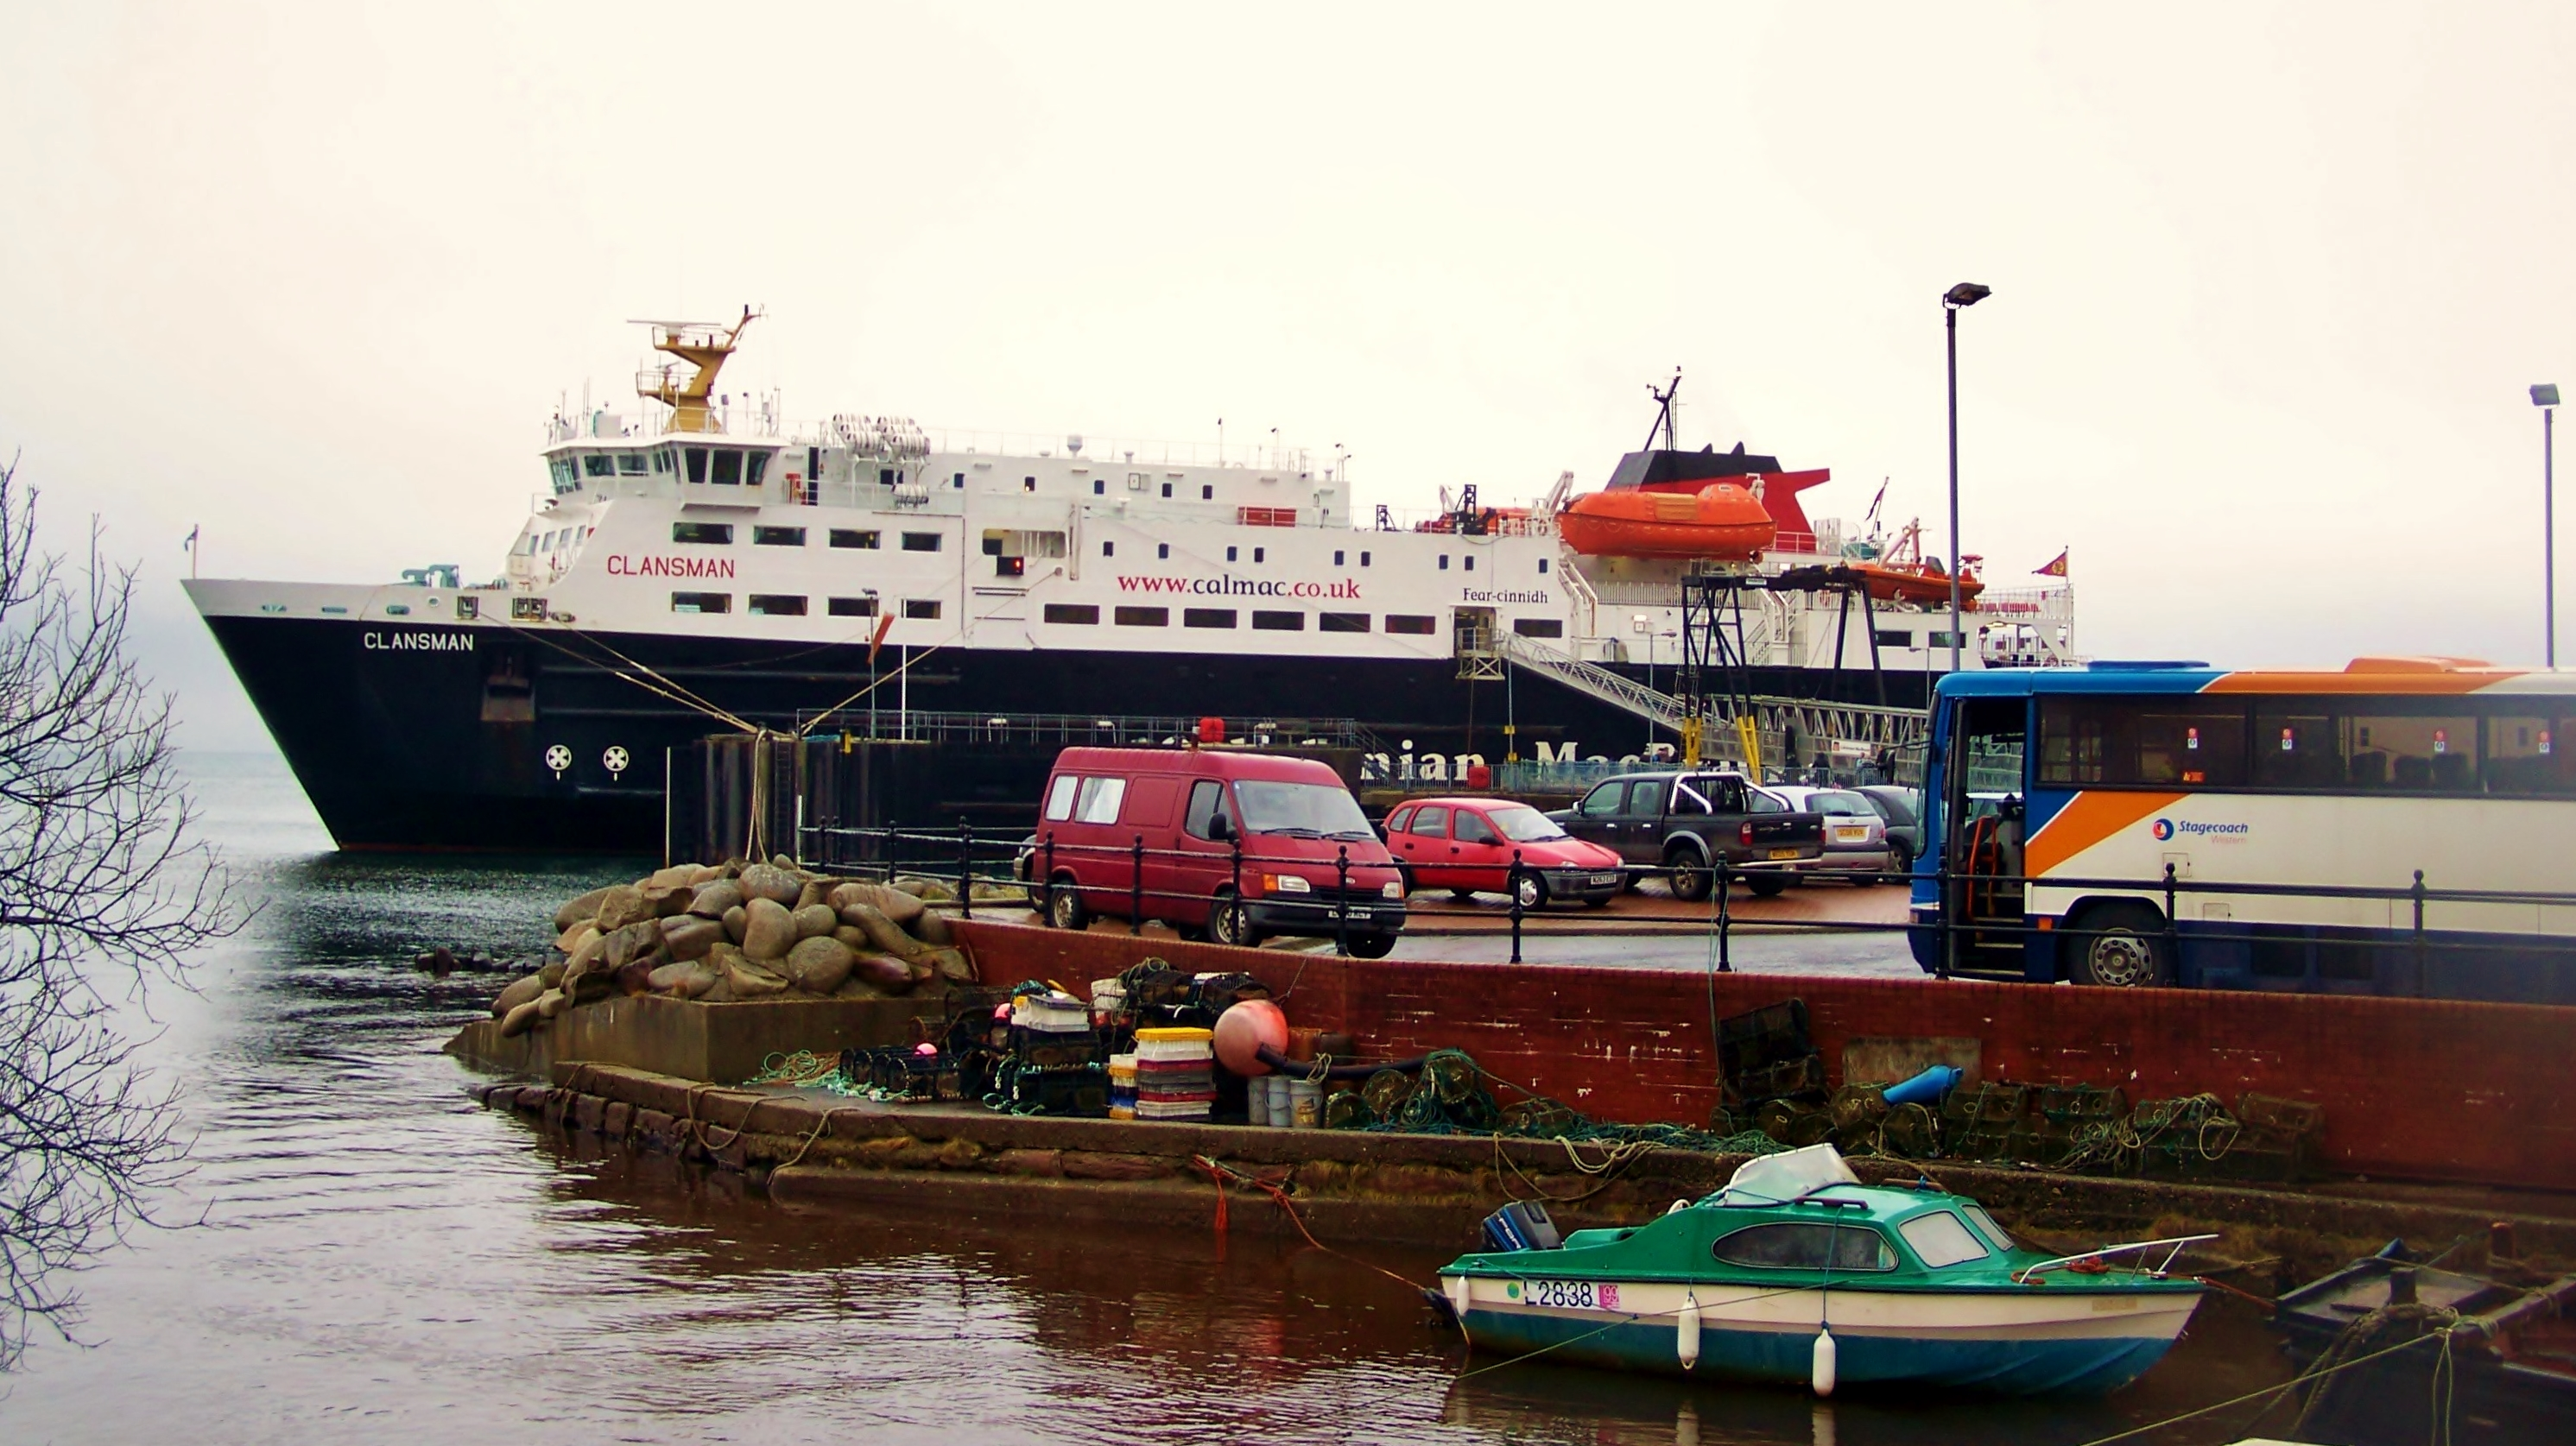 Clansman relieving at Brodick (Ships of CalMac)